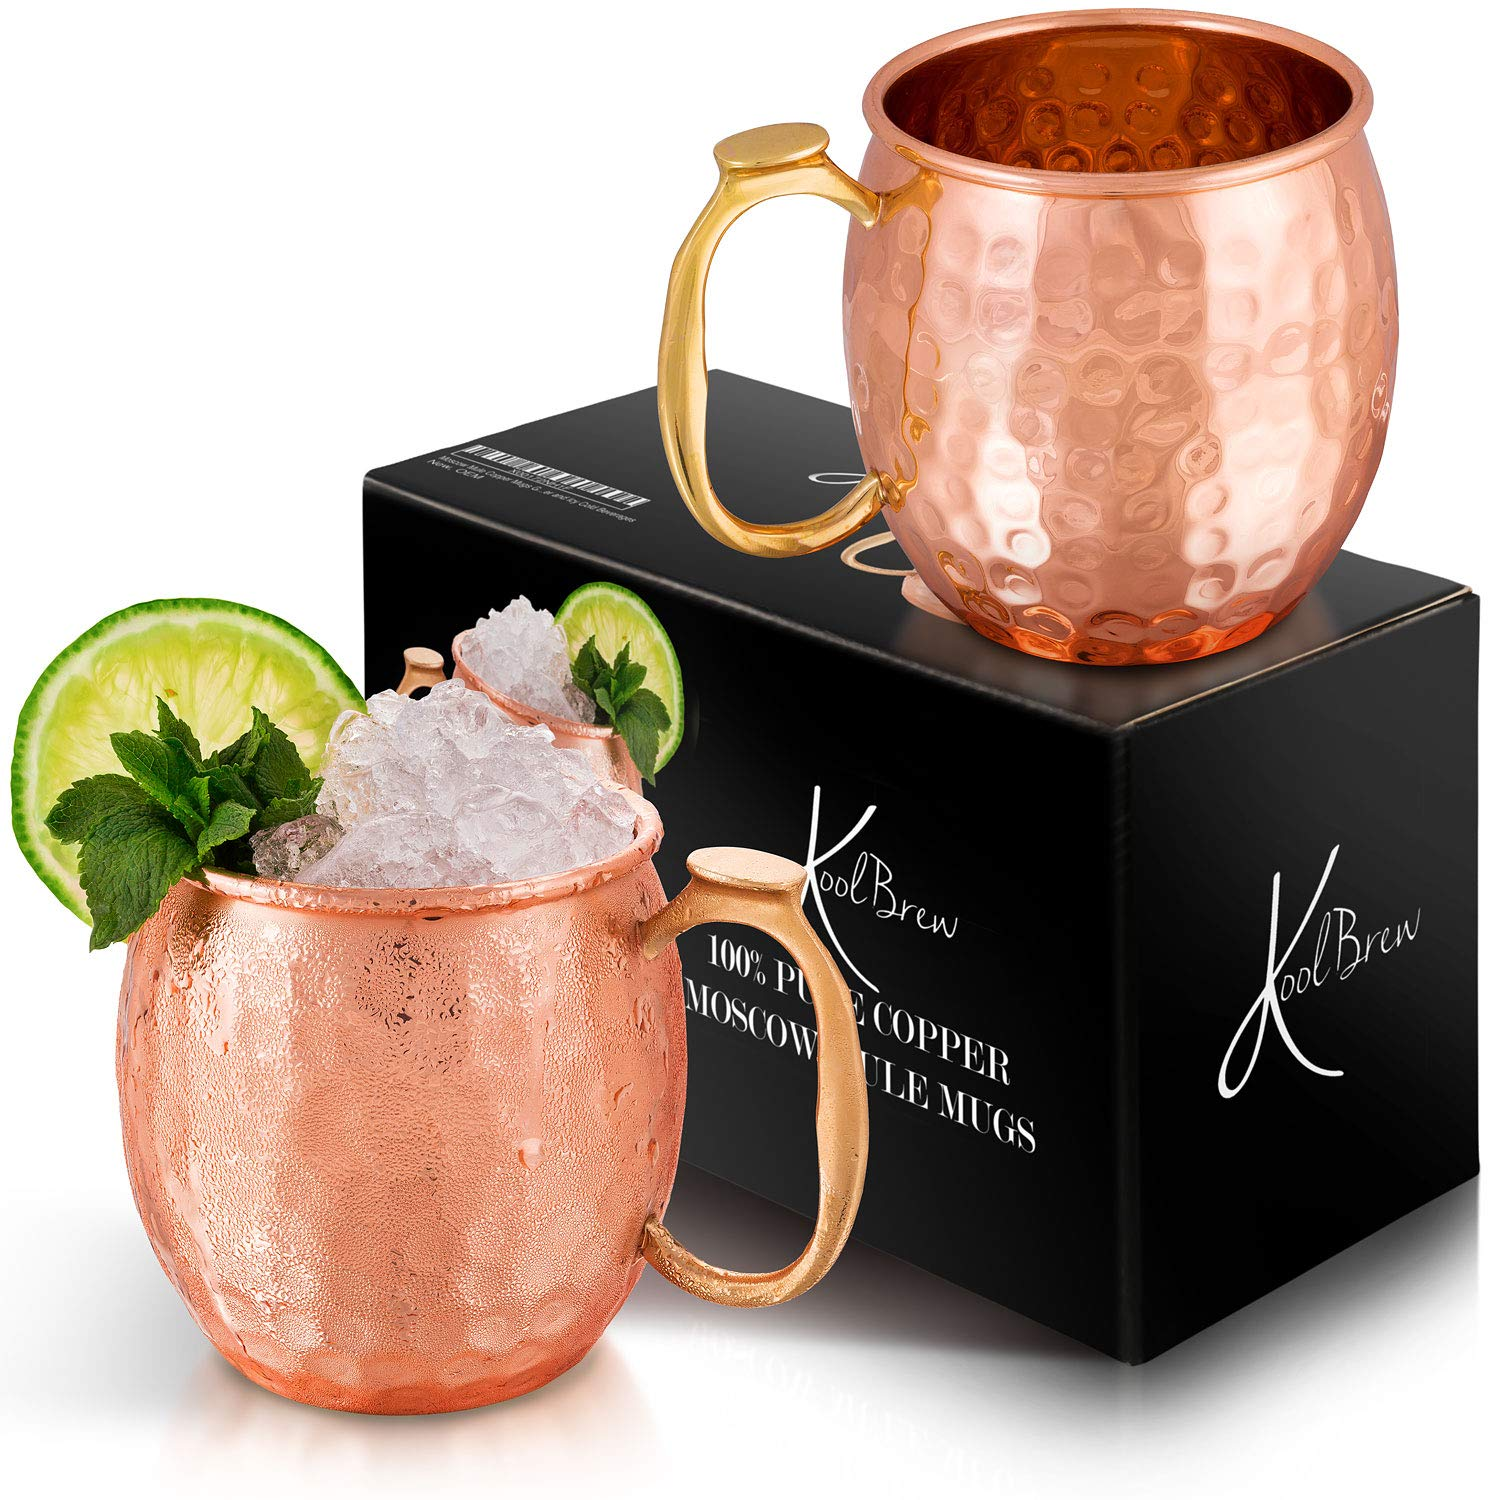 KoolBrew Moscow Mule Copper Mugs Gift Set of 2 Copper Mule Mugs,100% Pure Solid Copper Cups with Hammered Finish